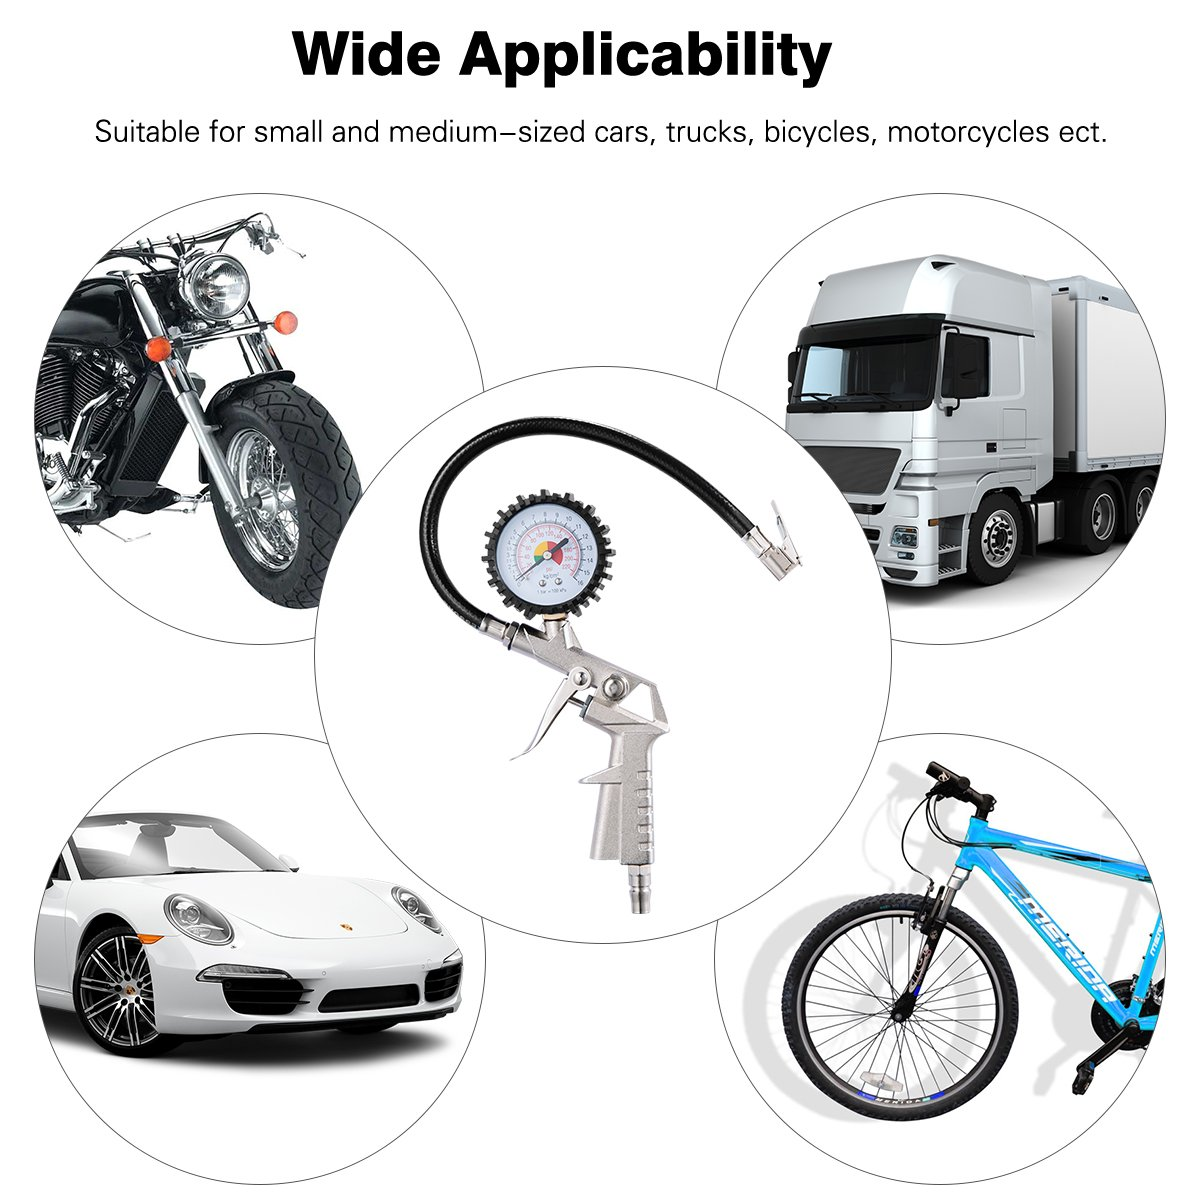 JRG Car Tyre Pressure Gauge /& 4X Tyre Presssure Monitor Valve Caps Max Test 220Psi//16Bar Tire Air Tester Tool For Tyre Car Bicycle Motorcycle